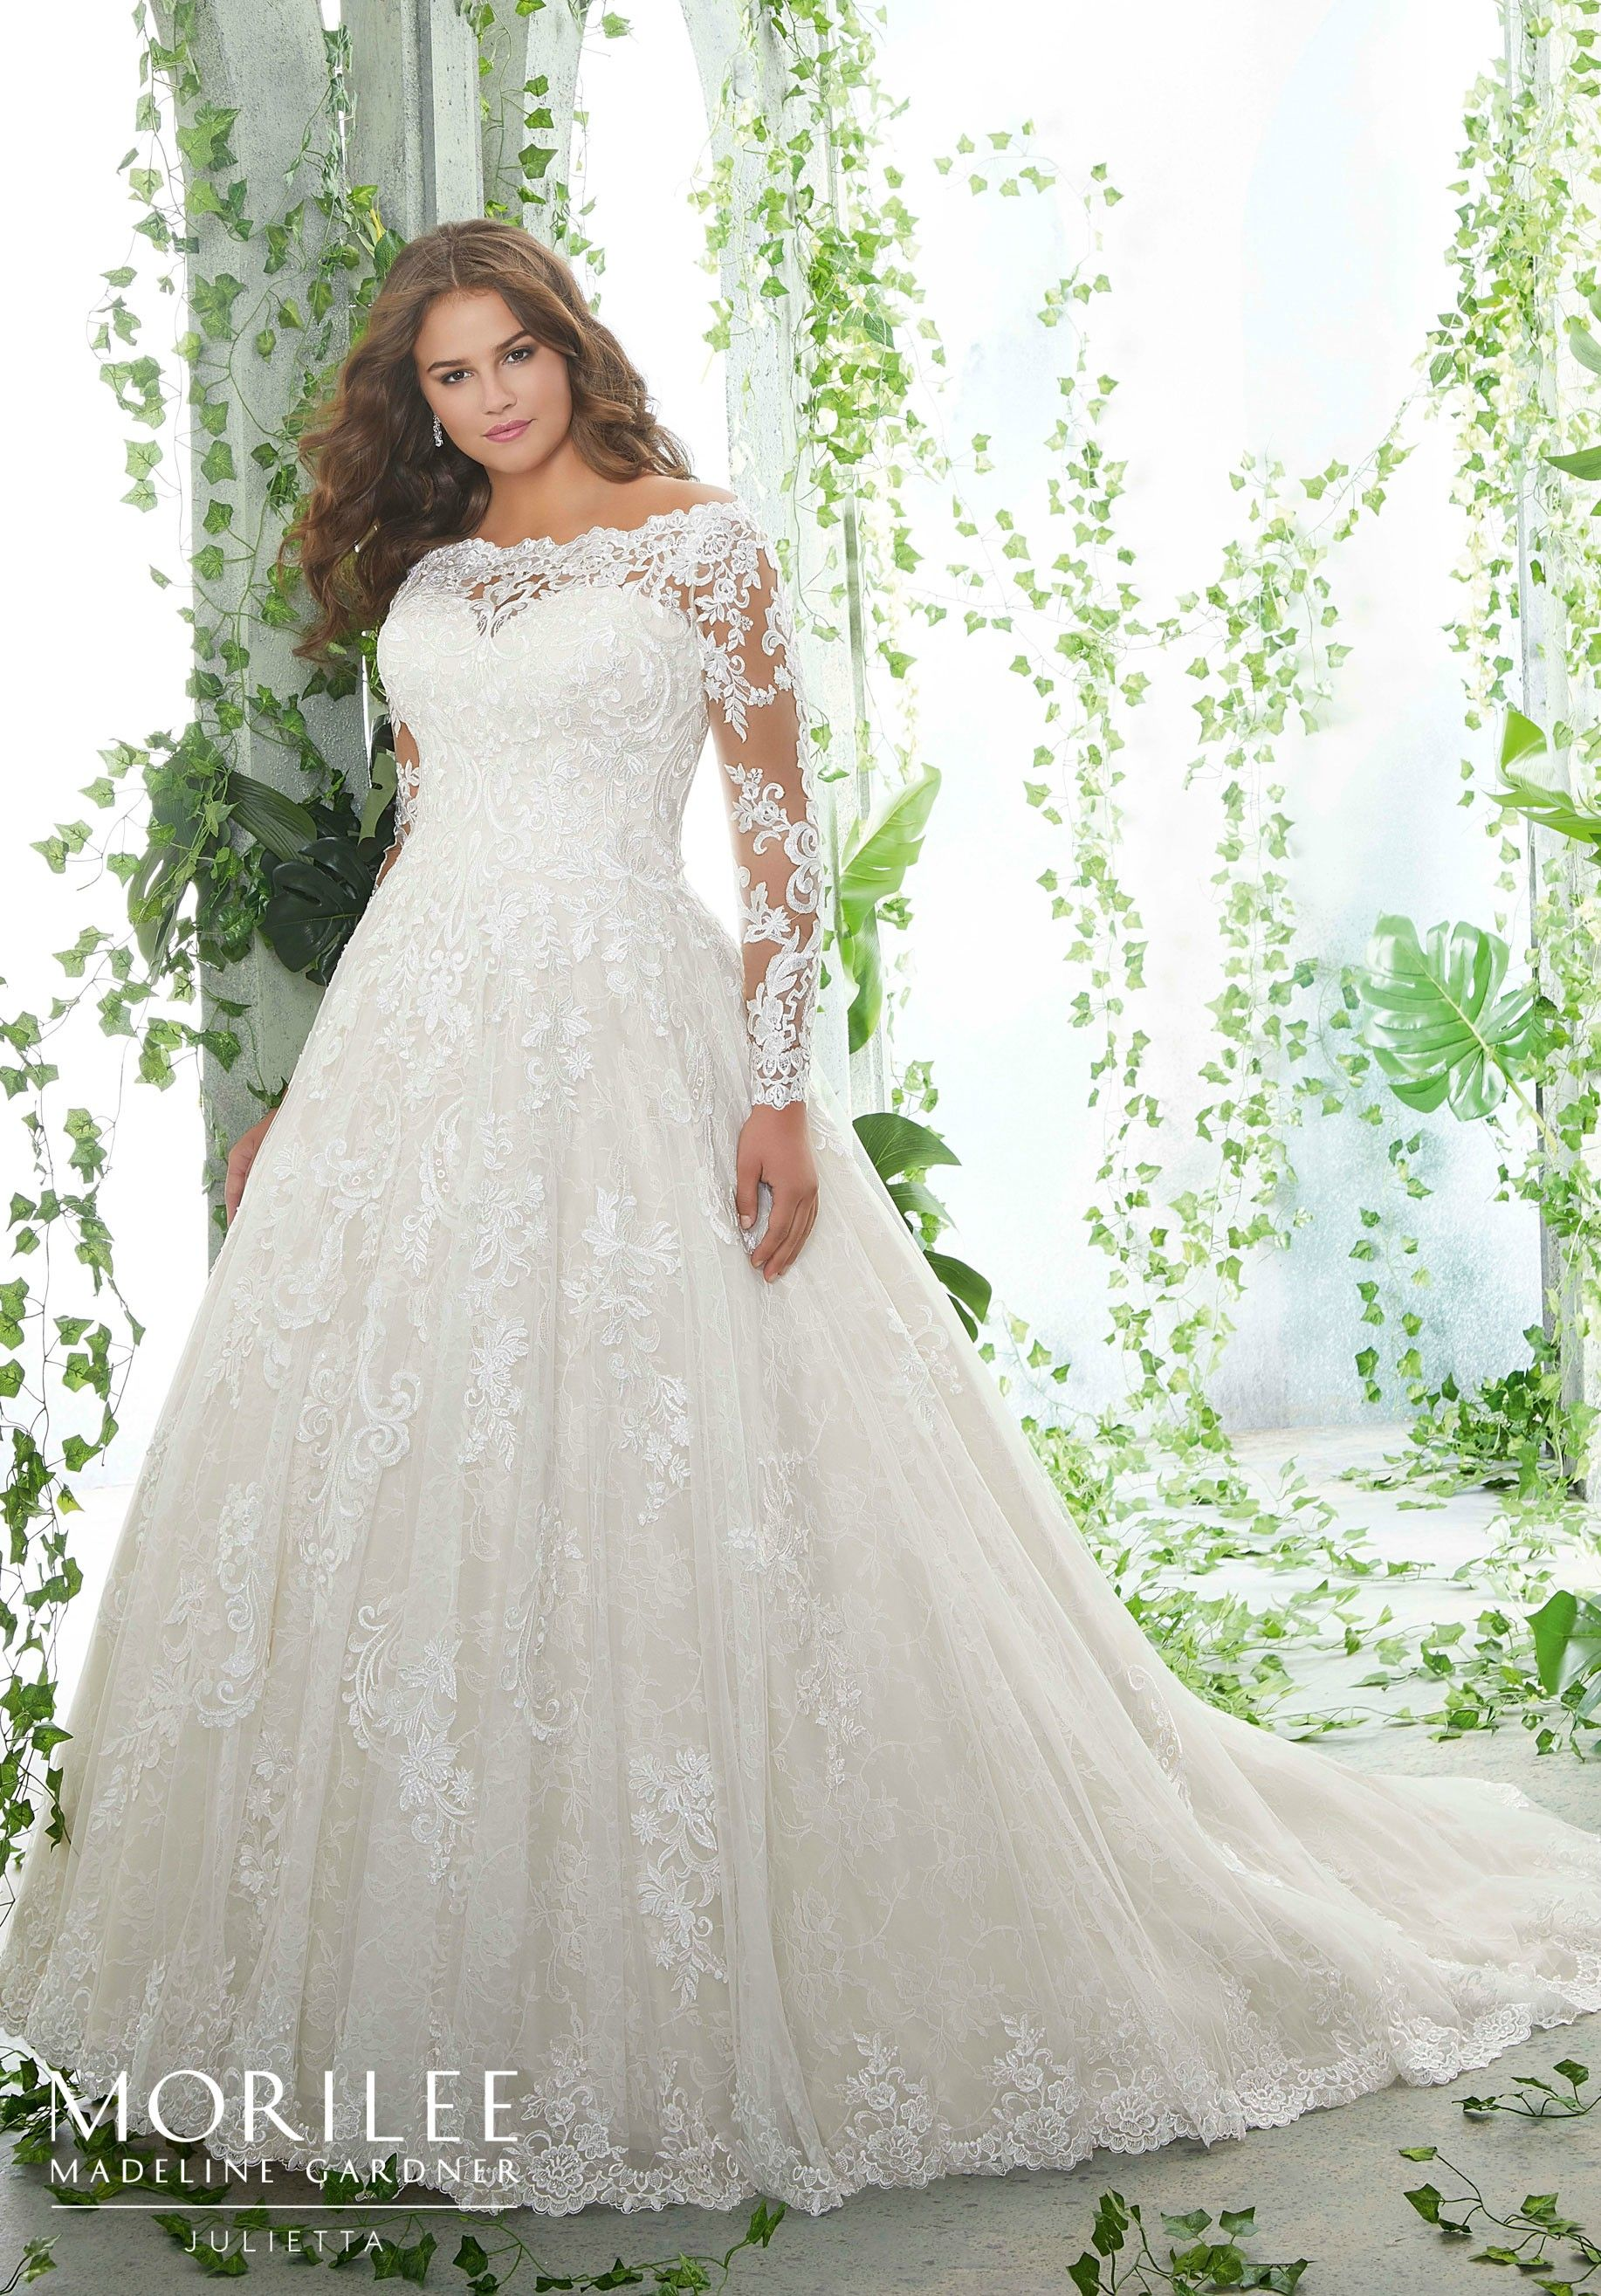 84779f8d782 Morilee | Madeline Gardner, Patience Style 3258 | Frosted, Embroidered Lace  Appliqués on a Soft Tulle Ball Gown Over Chantilly Lace with Scalloped  Hemline ...